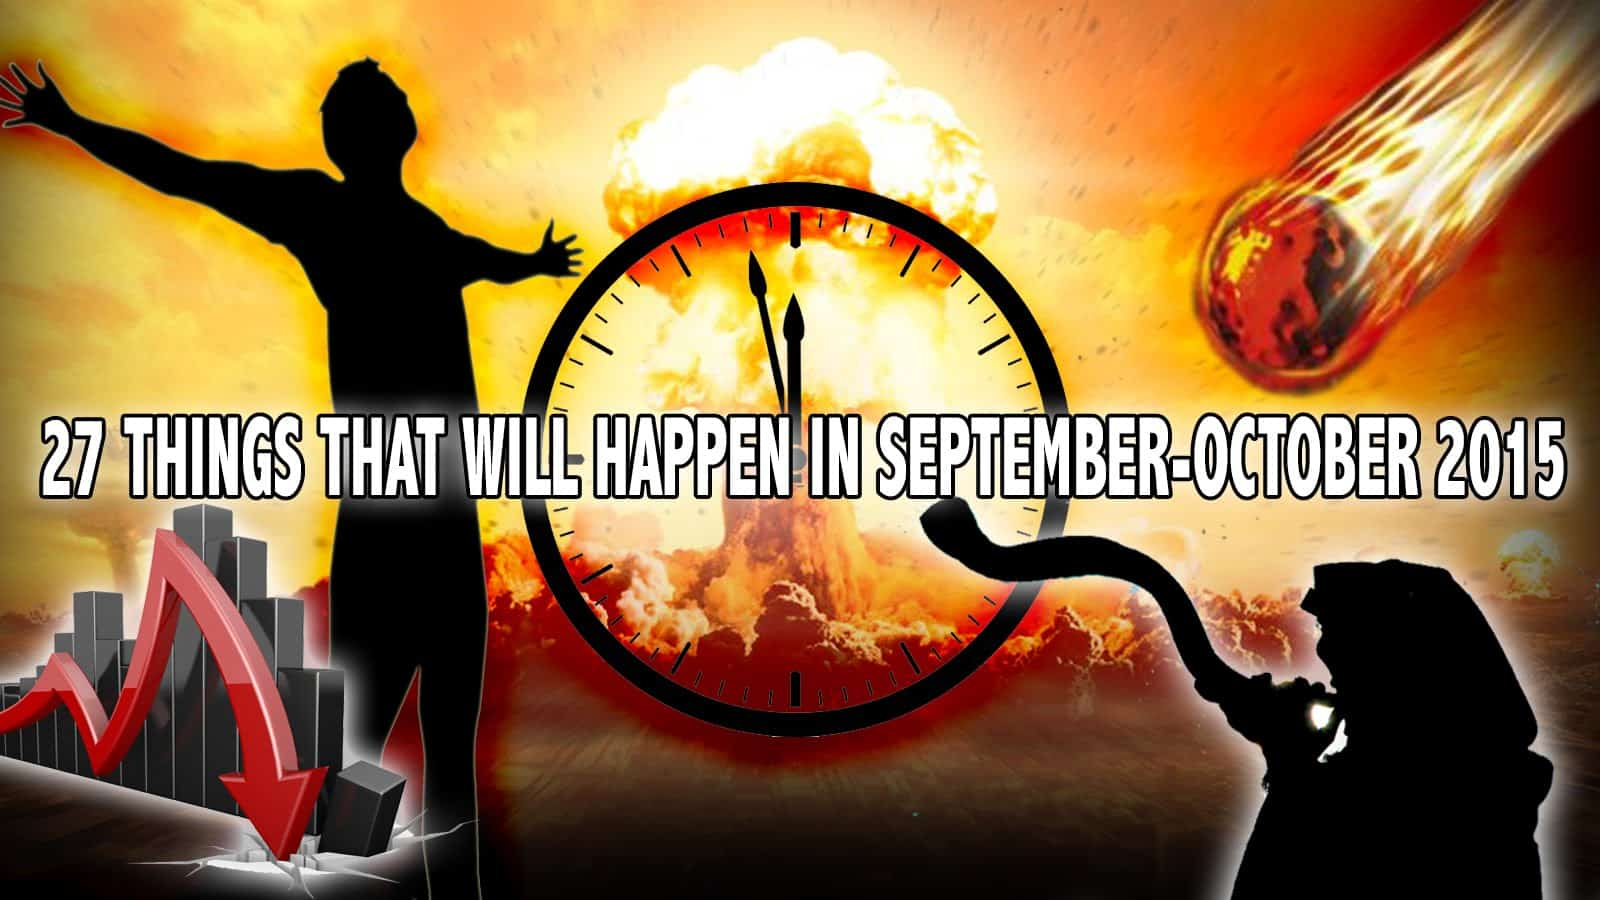 27 THINGS THAT WILL HAPPEN IN SEPTEMBER-OCTOBER 2015